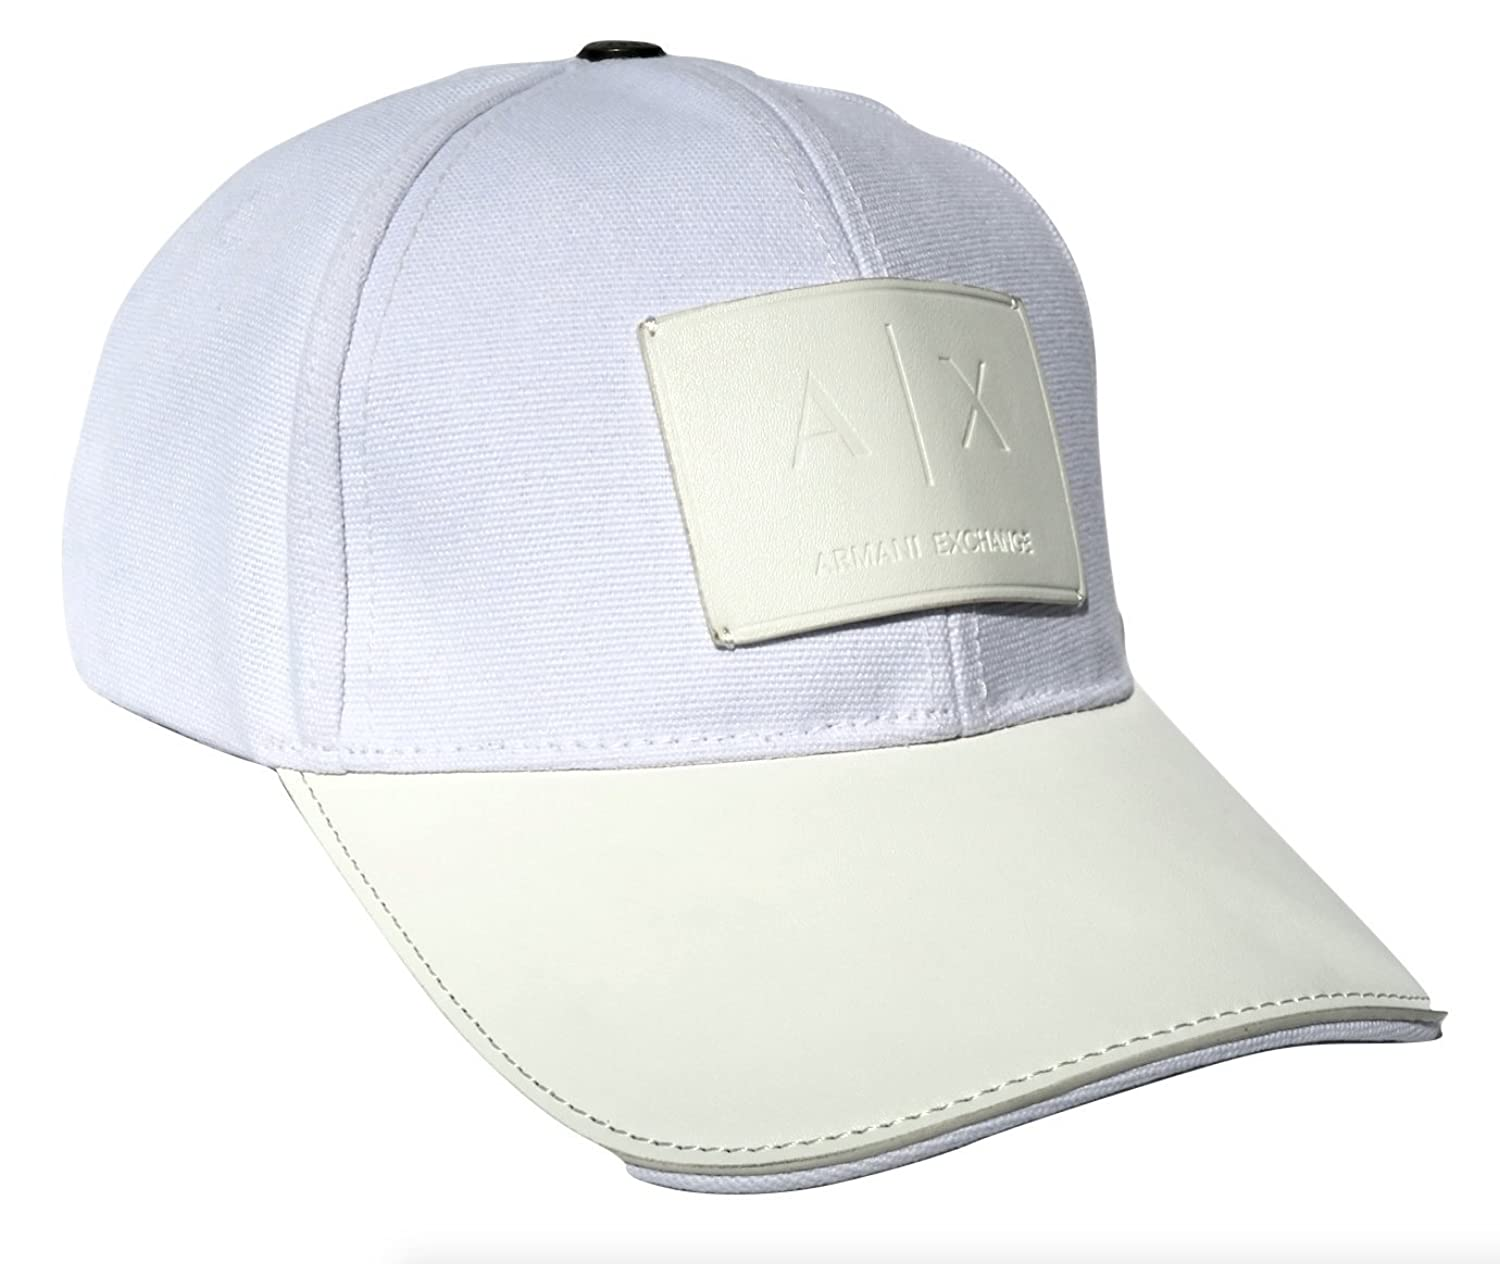 d0cce112 Top2: Armani Exchange Leather Patch Baseball Hat, White, One Size/  Adjustable